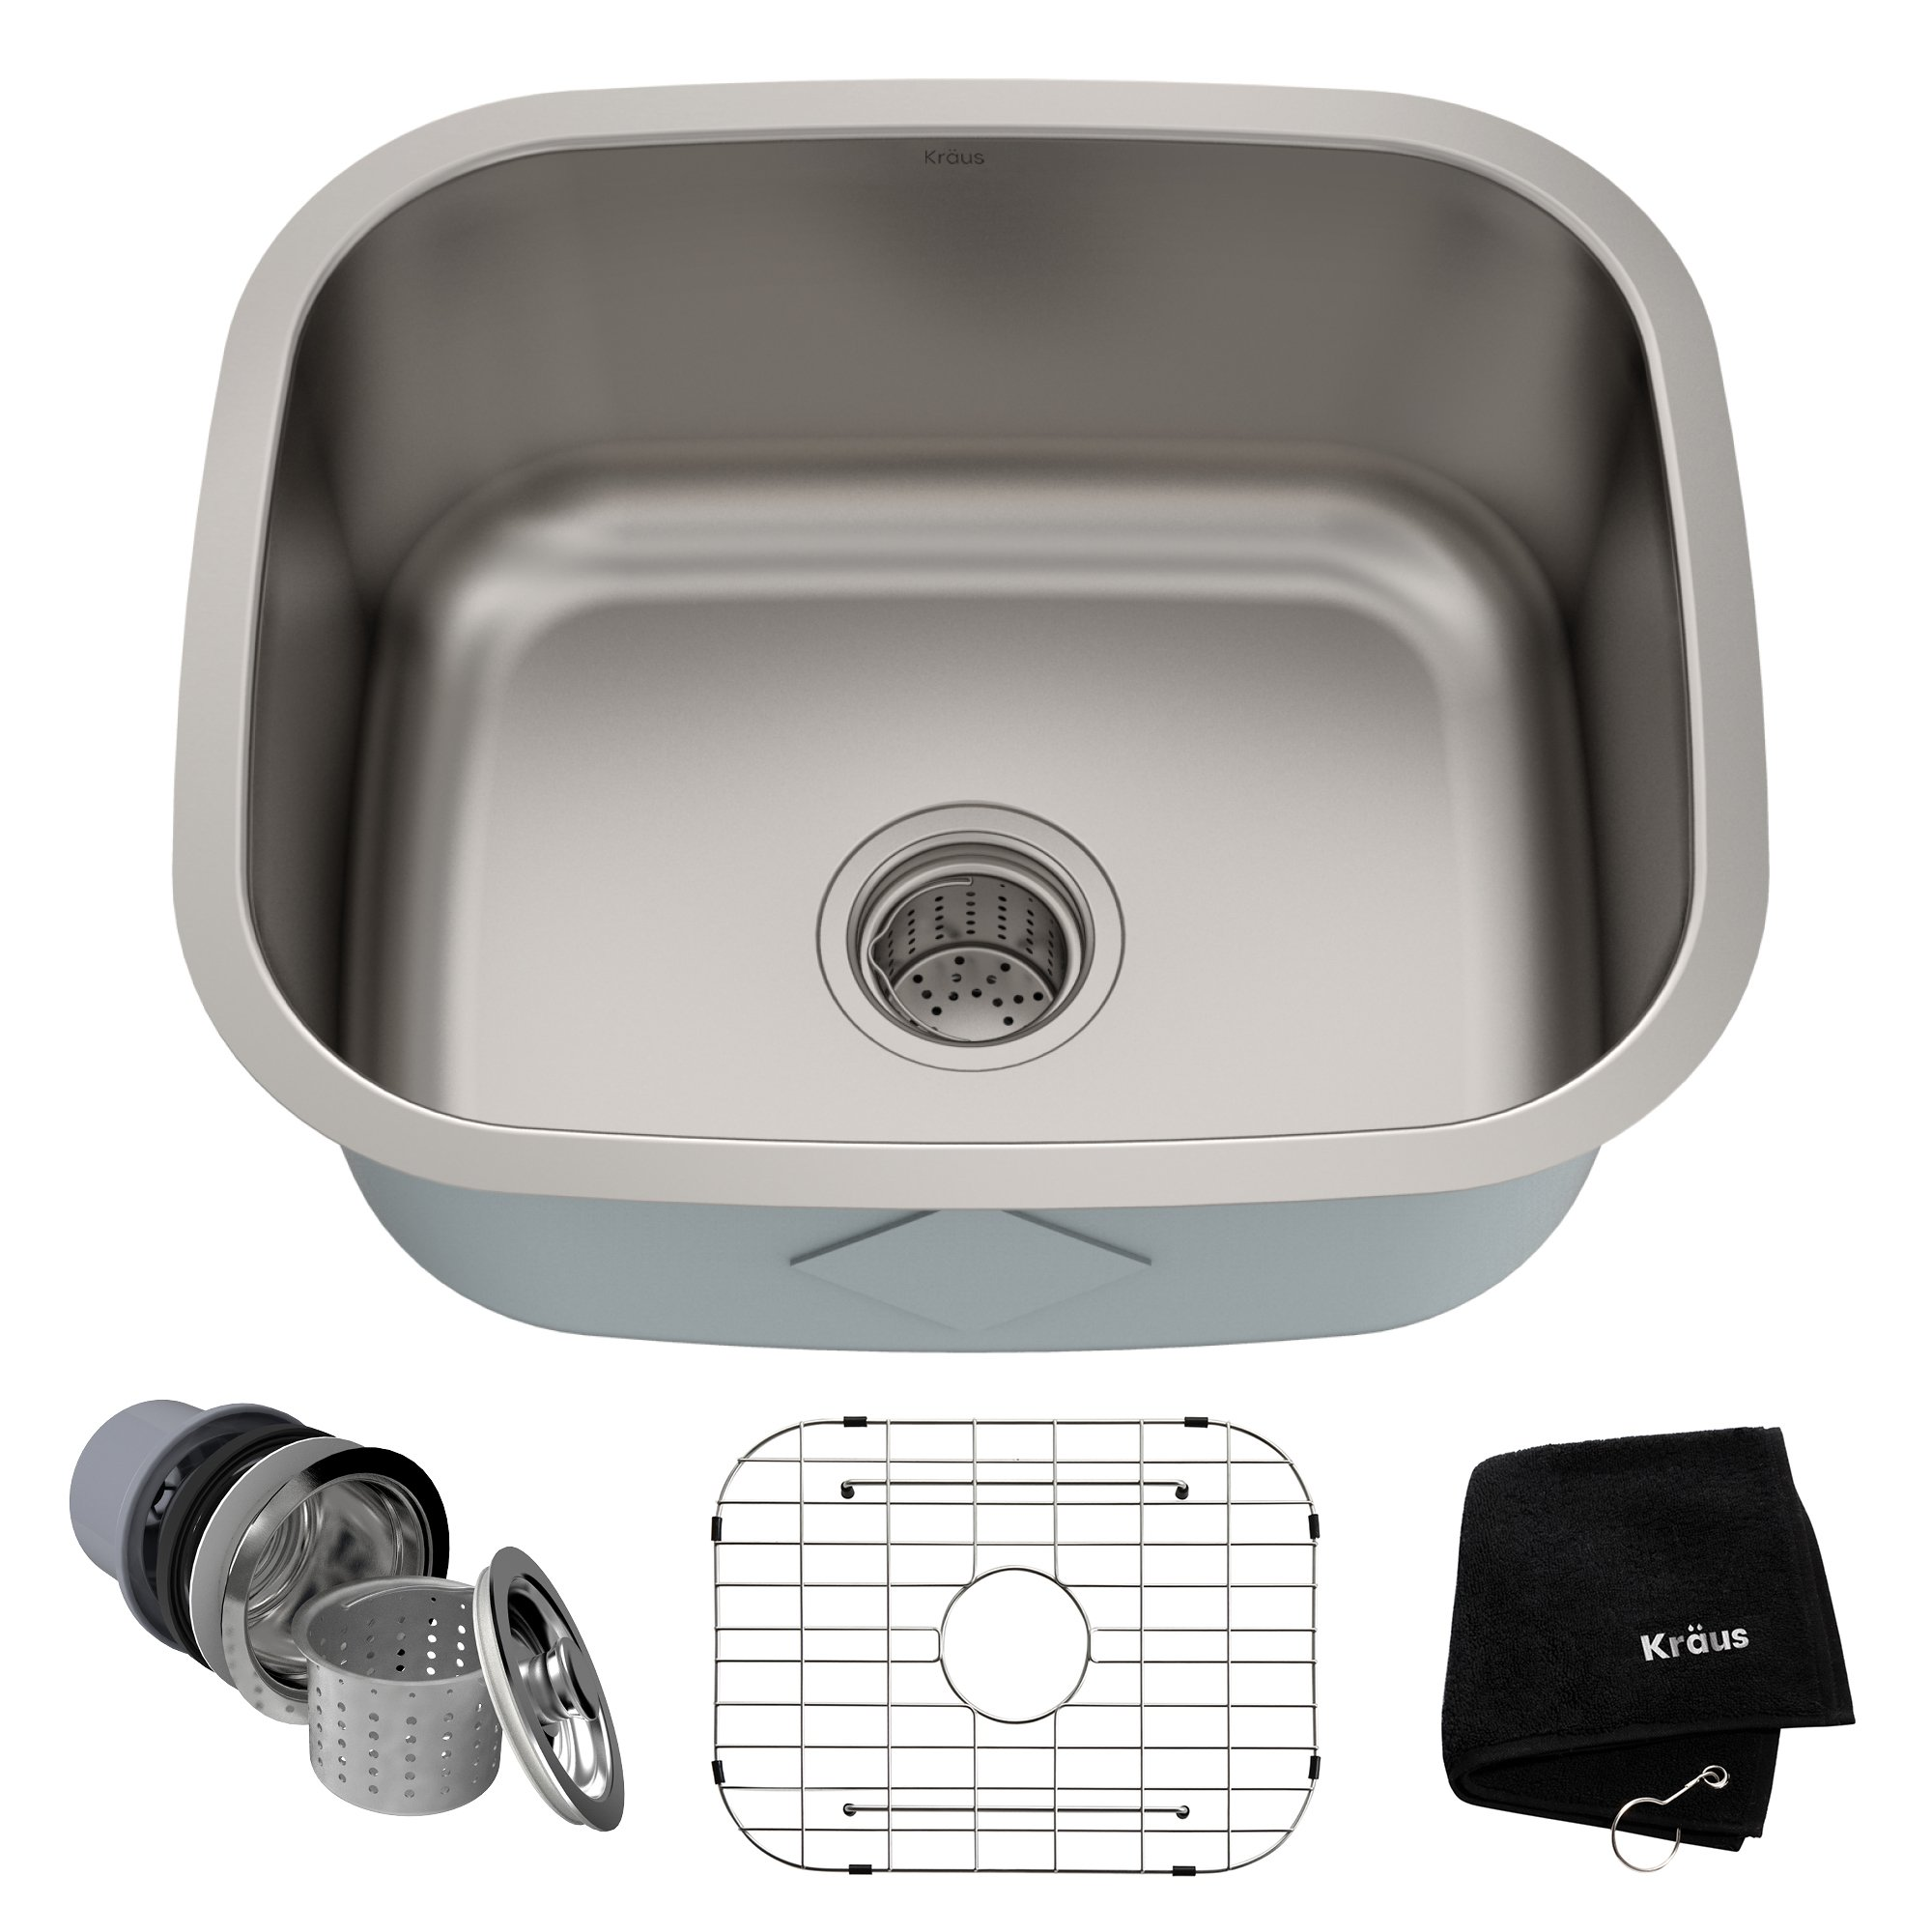 Kraus KBU11 20 inch Undermount Single Bowl 16 gauge Stainless Steel Kitchen Sink by Kraus